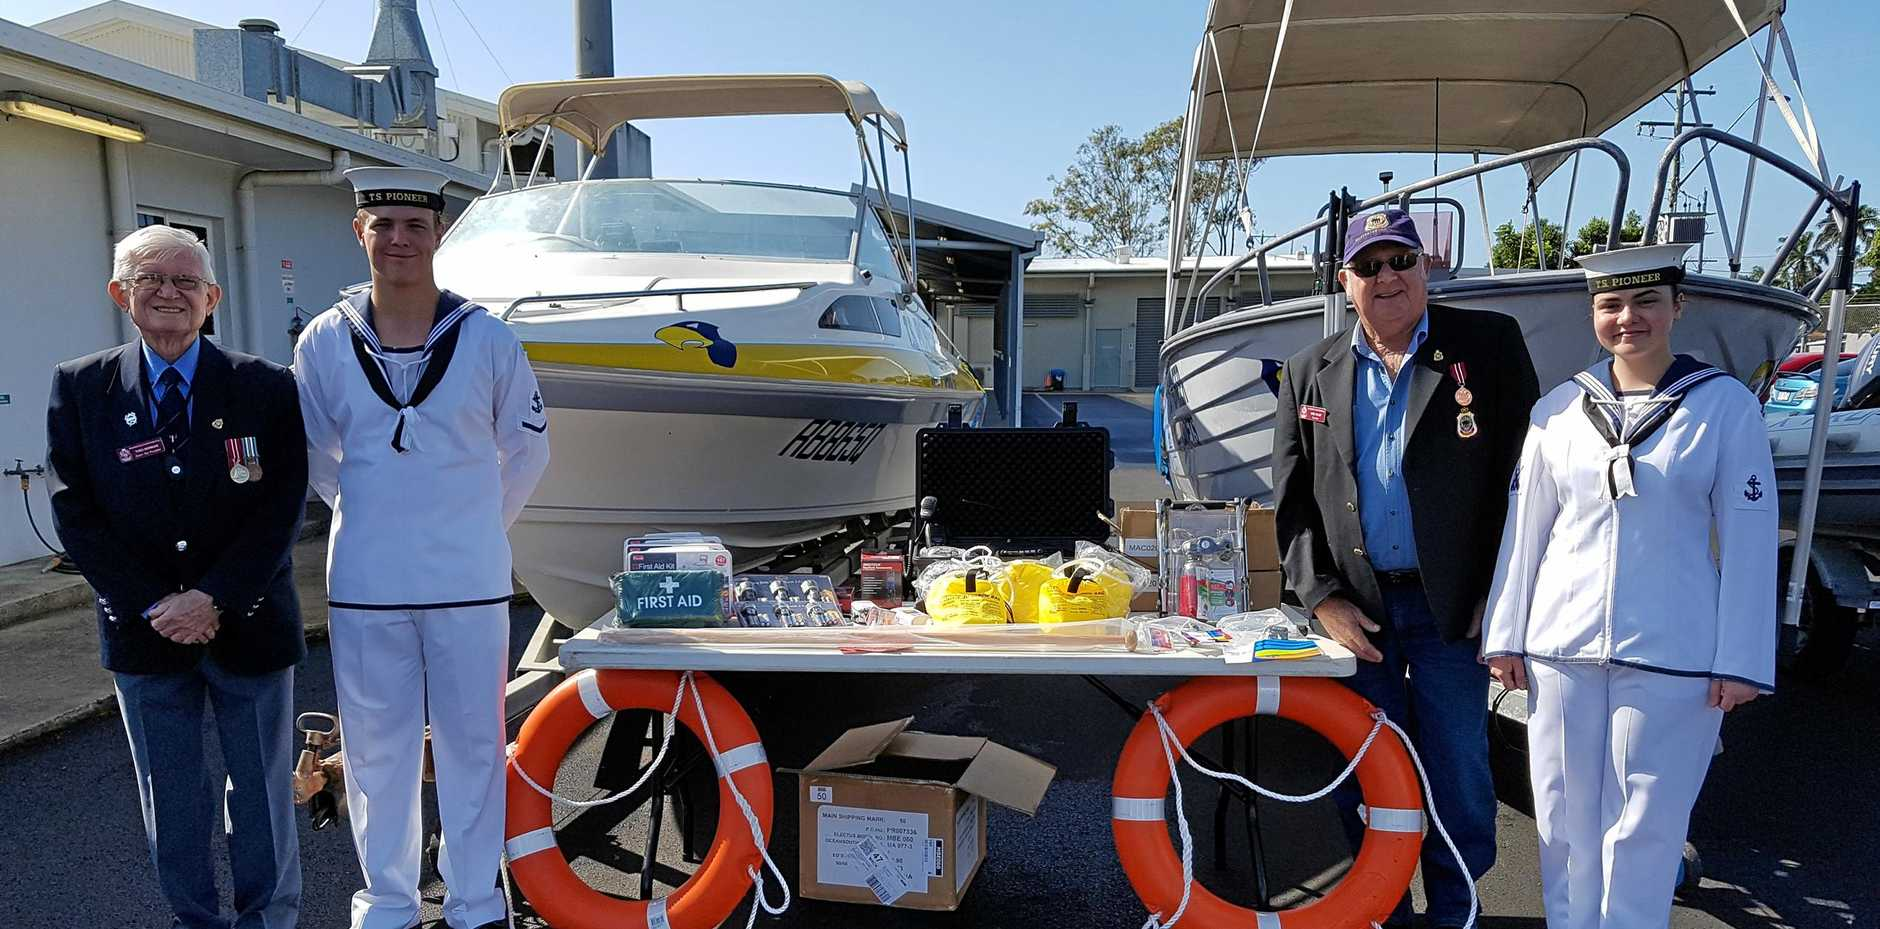 Boating accessories bought with grant money from Walkerston RSL sub branch. TS Pioneer Cadets CDTLS Adam Brazier and CDTLS Tyra Barry with Walkerston/Pleystowe RSL sub branch members Theo Morrow and President Noel Wales